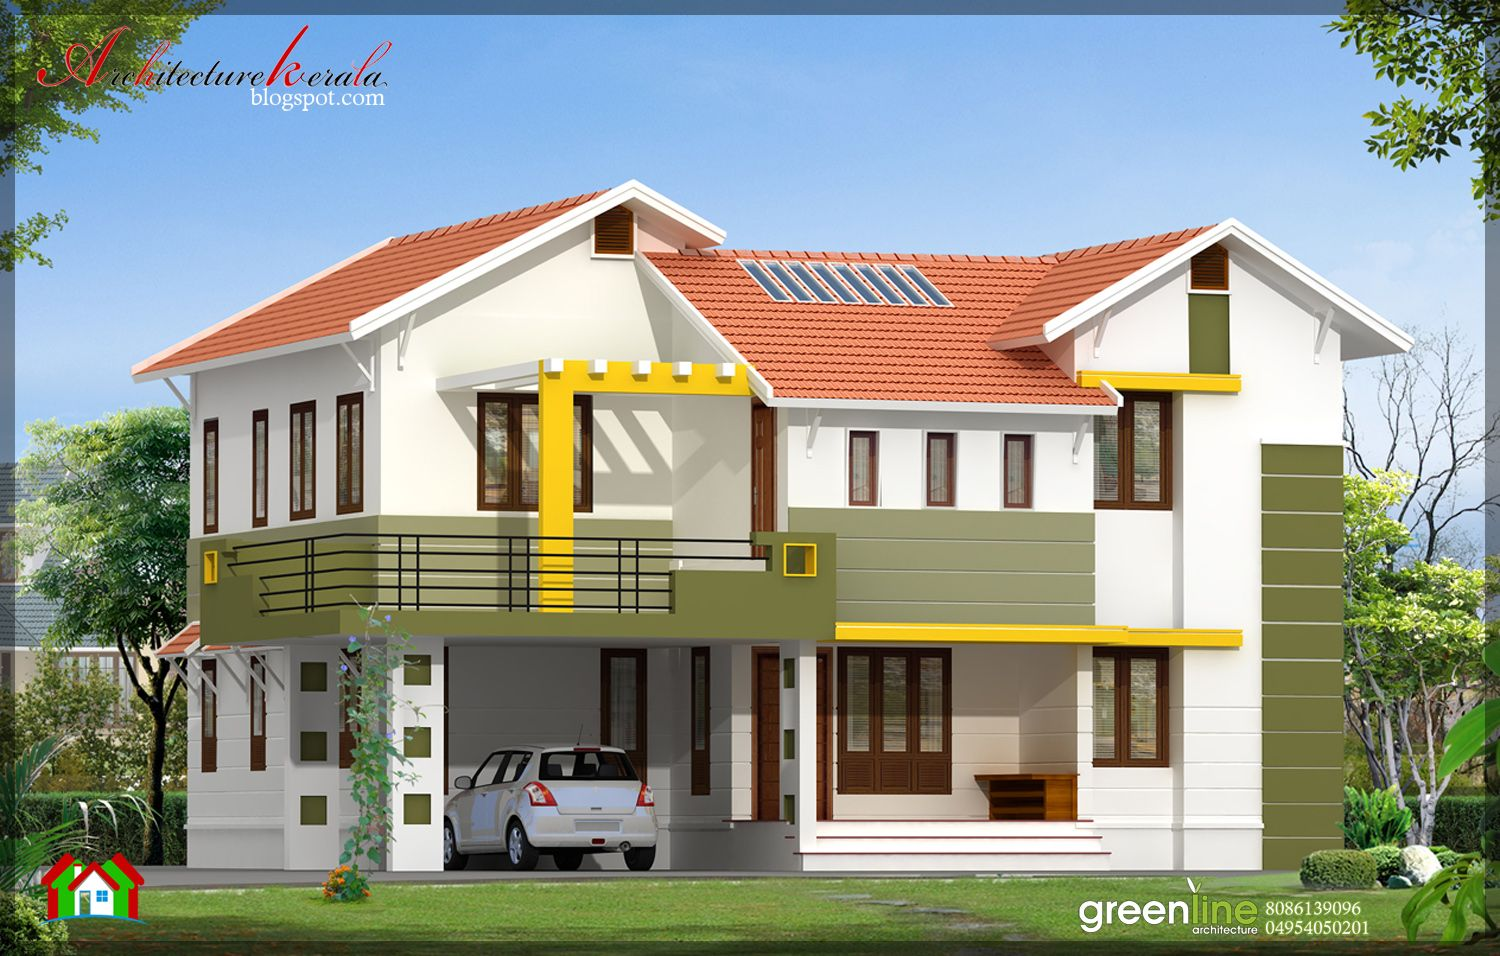 architecture kerala may 2012 philippines modern house